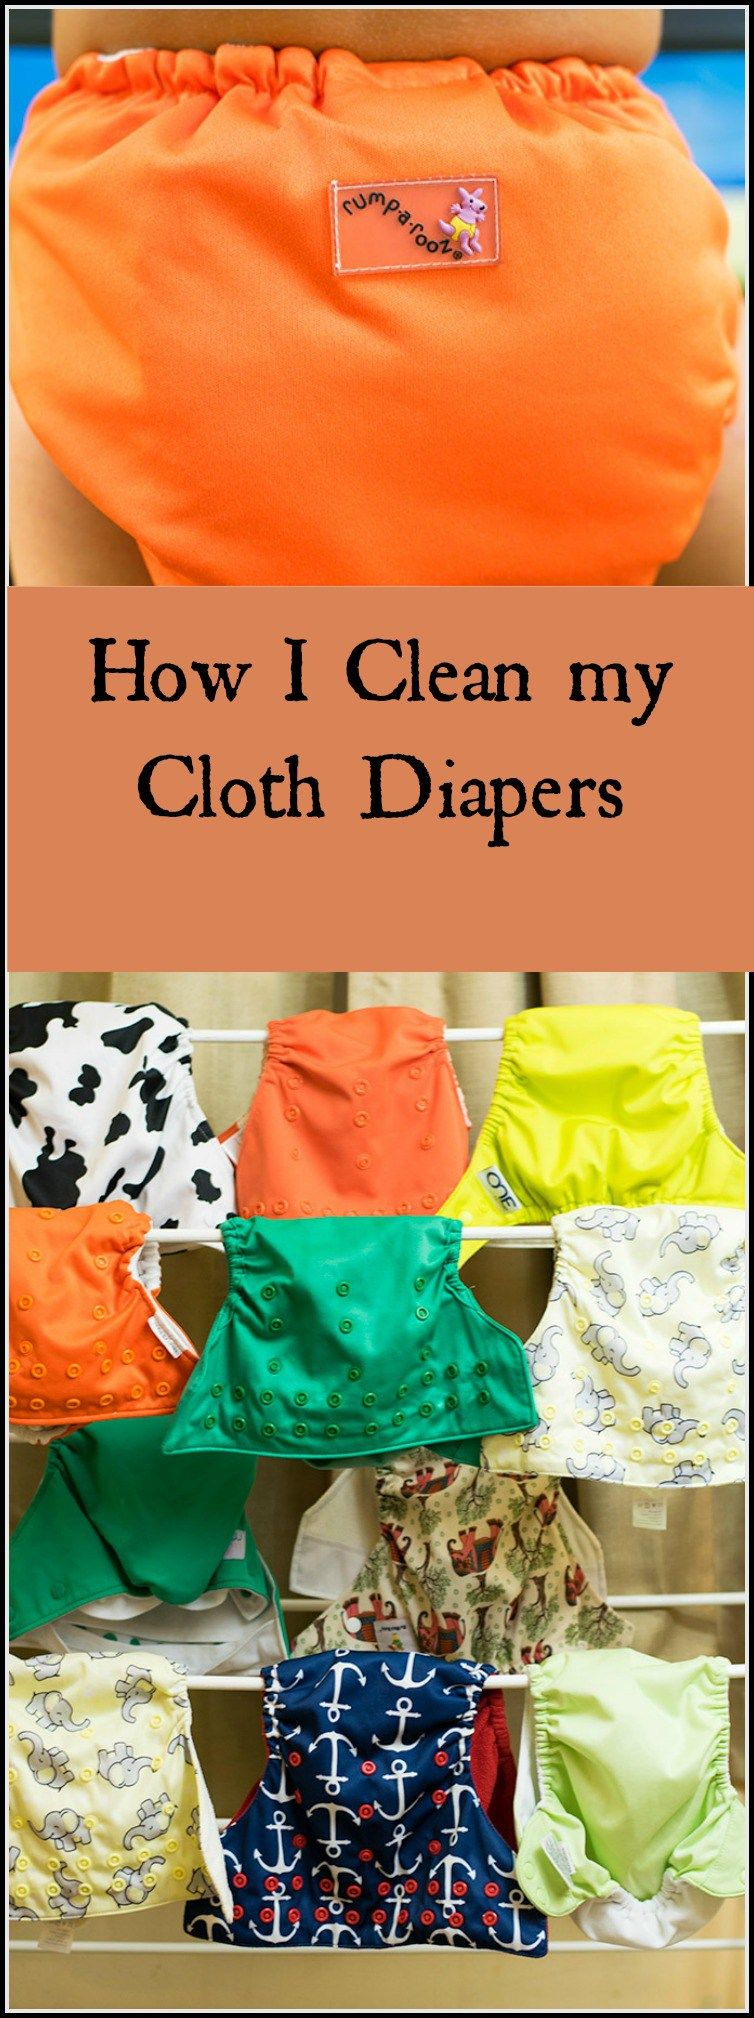 How I Keep My Cloth Diapers Clean Cloth diapers, Wash